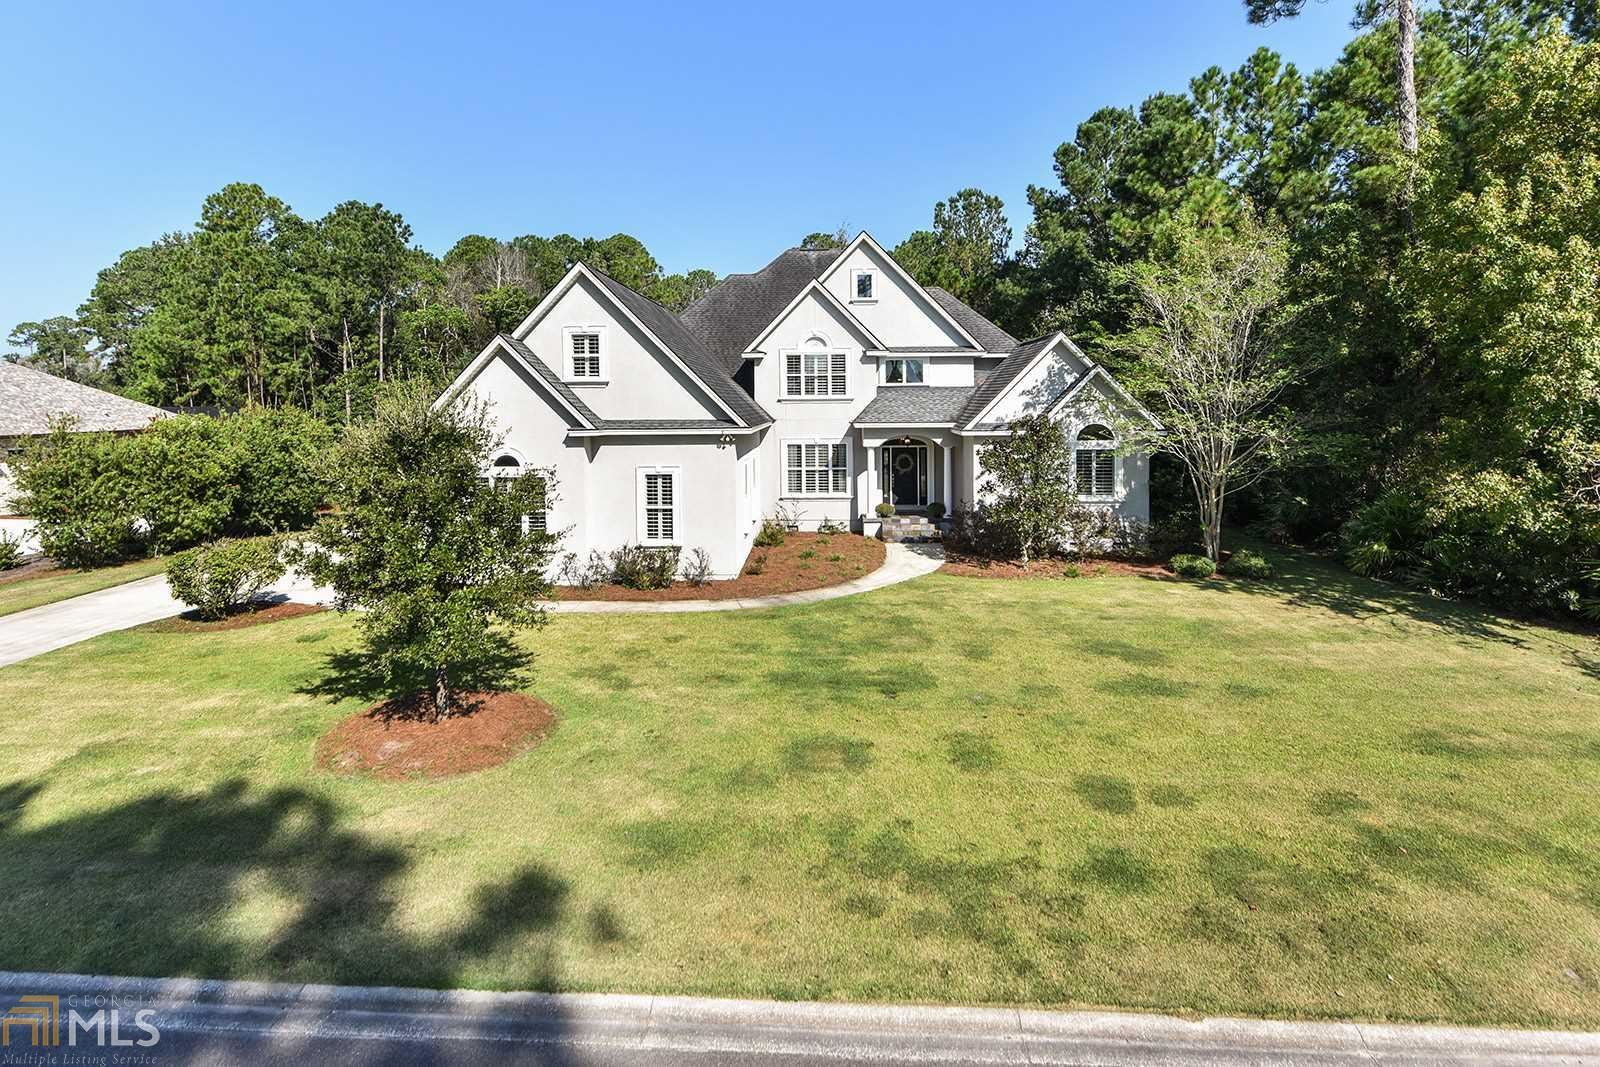 295 Osprey Cir, Saint Marys, GA 31558 - MLS#: 8874485